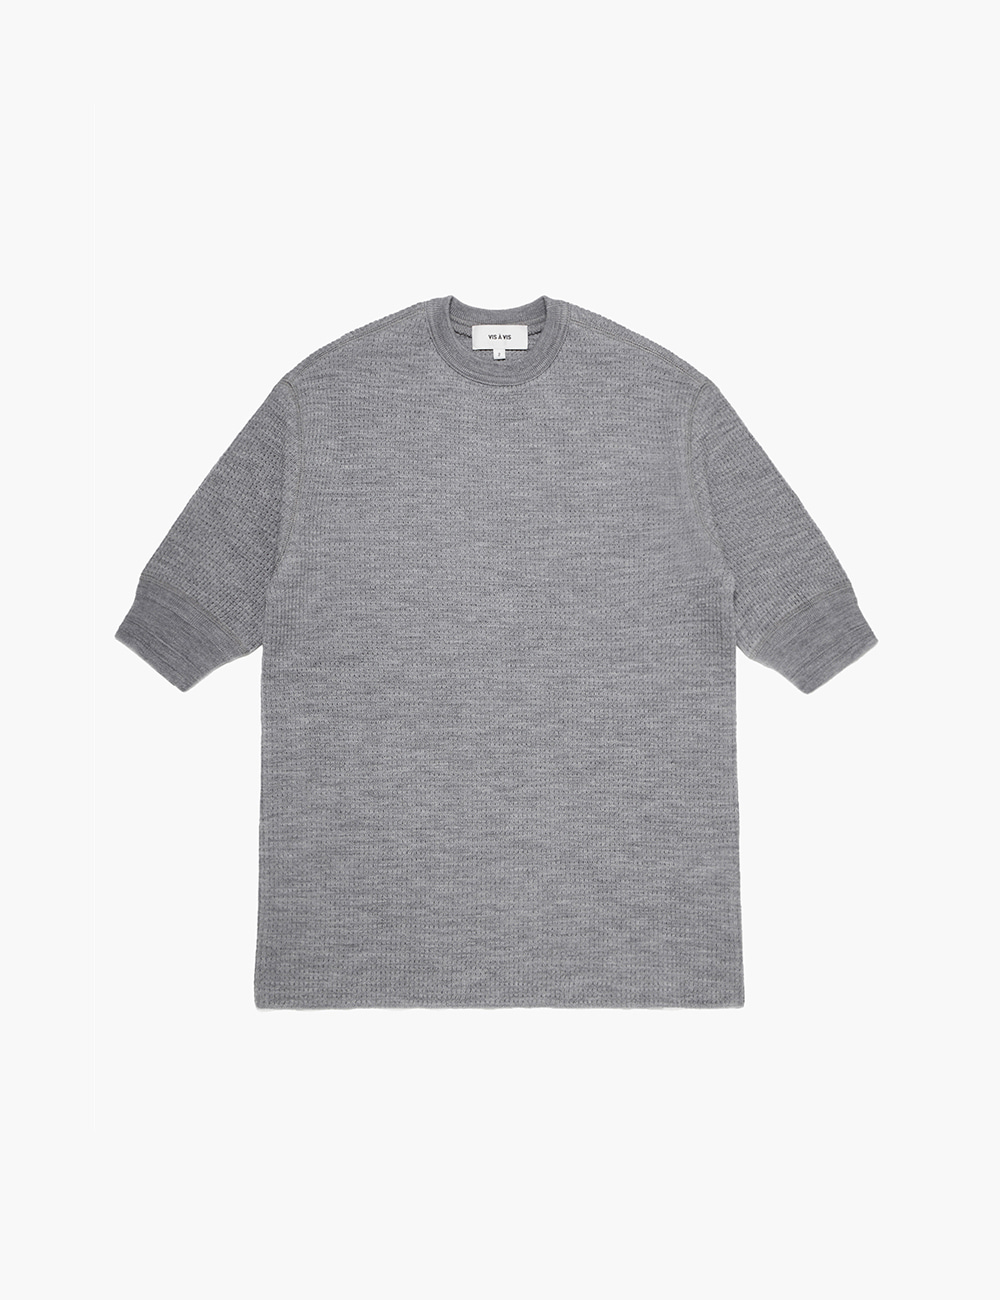 3/4 SLEEVE WOOL THERMAL TOP (GRAY)